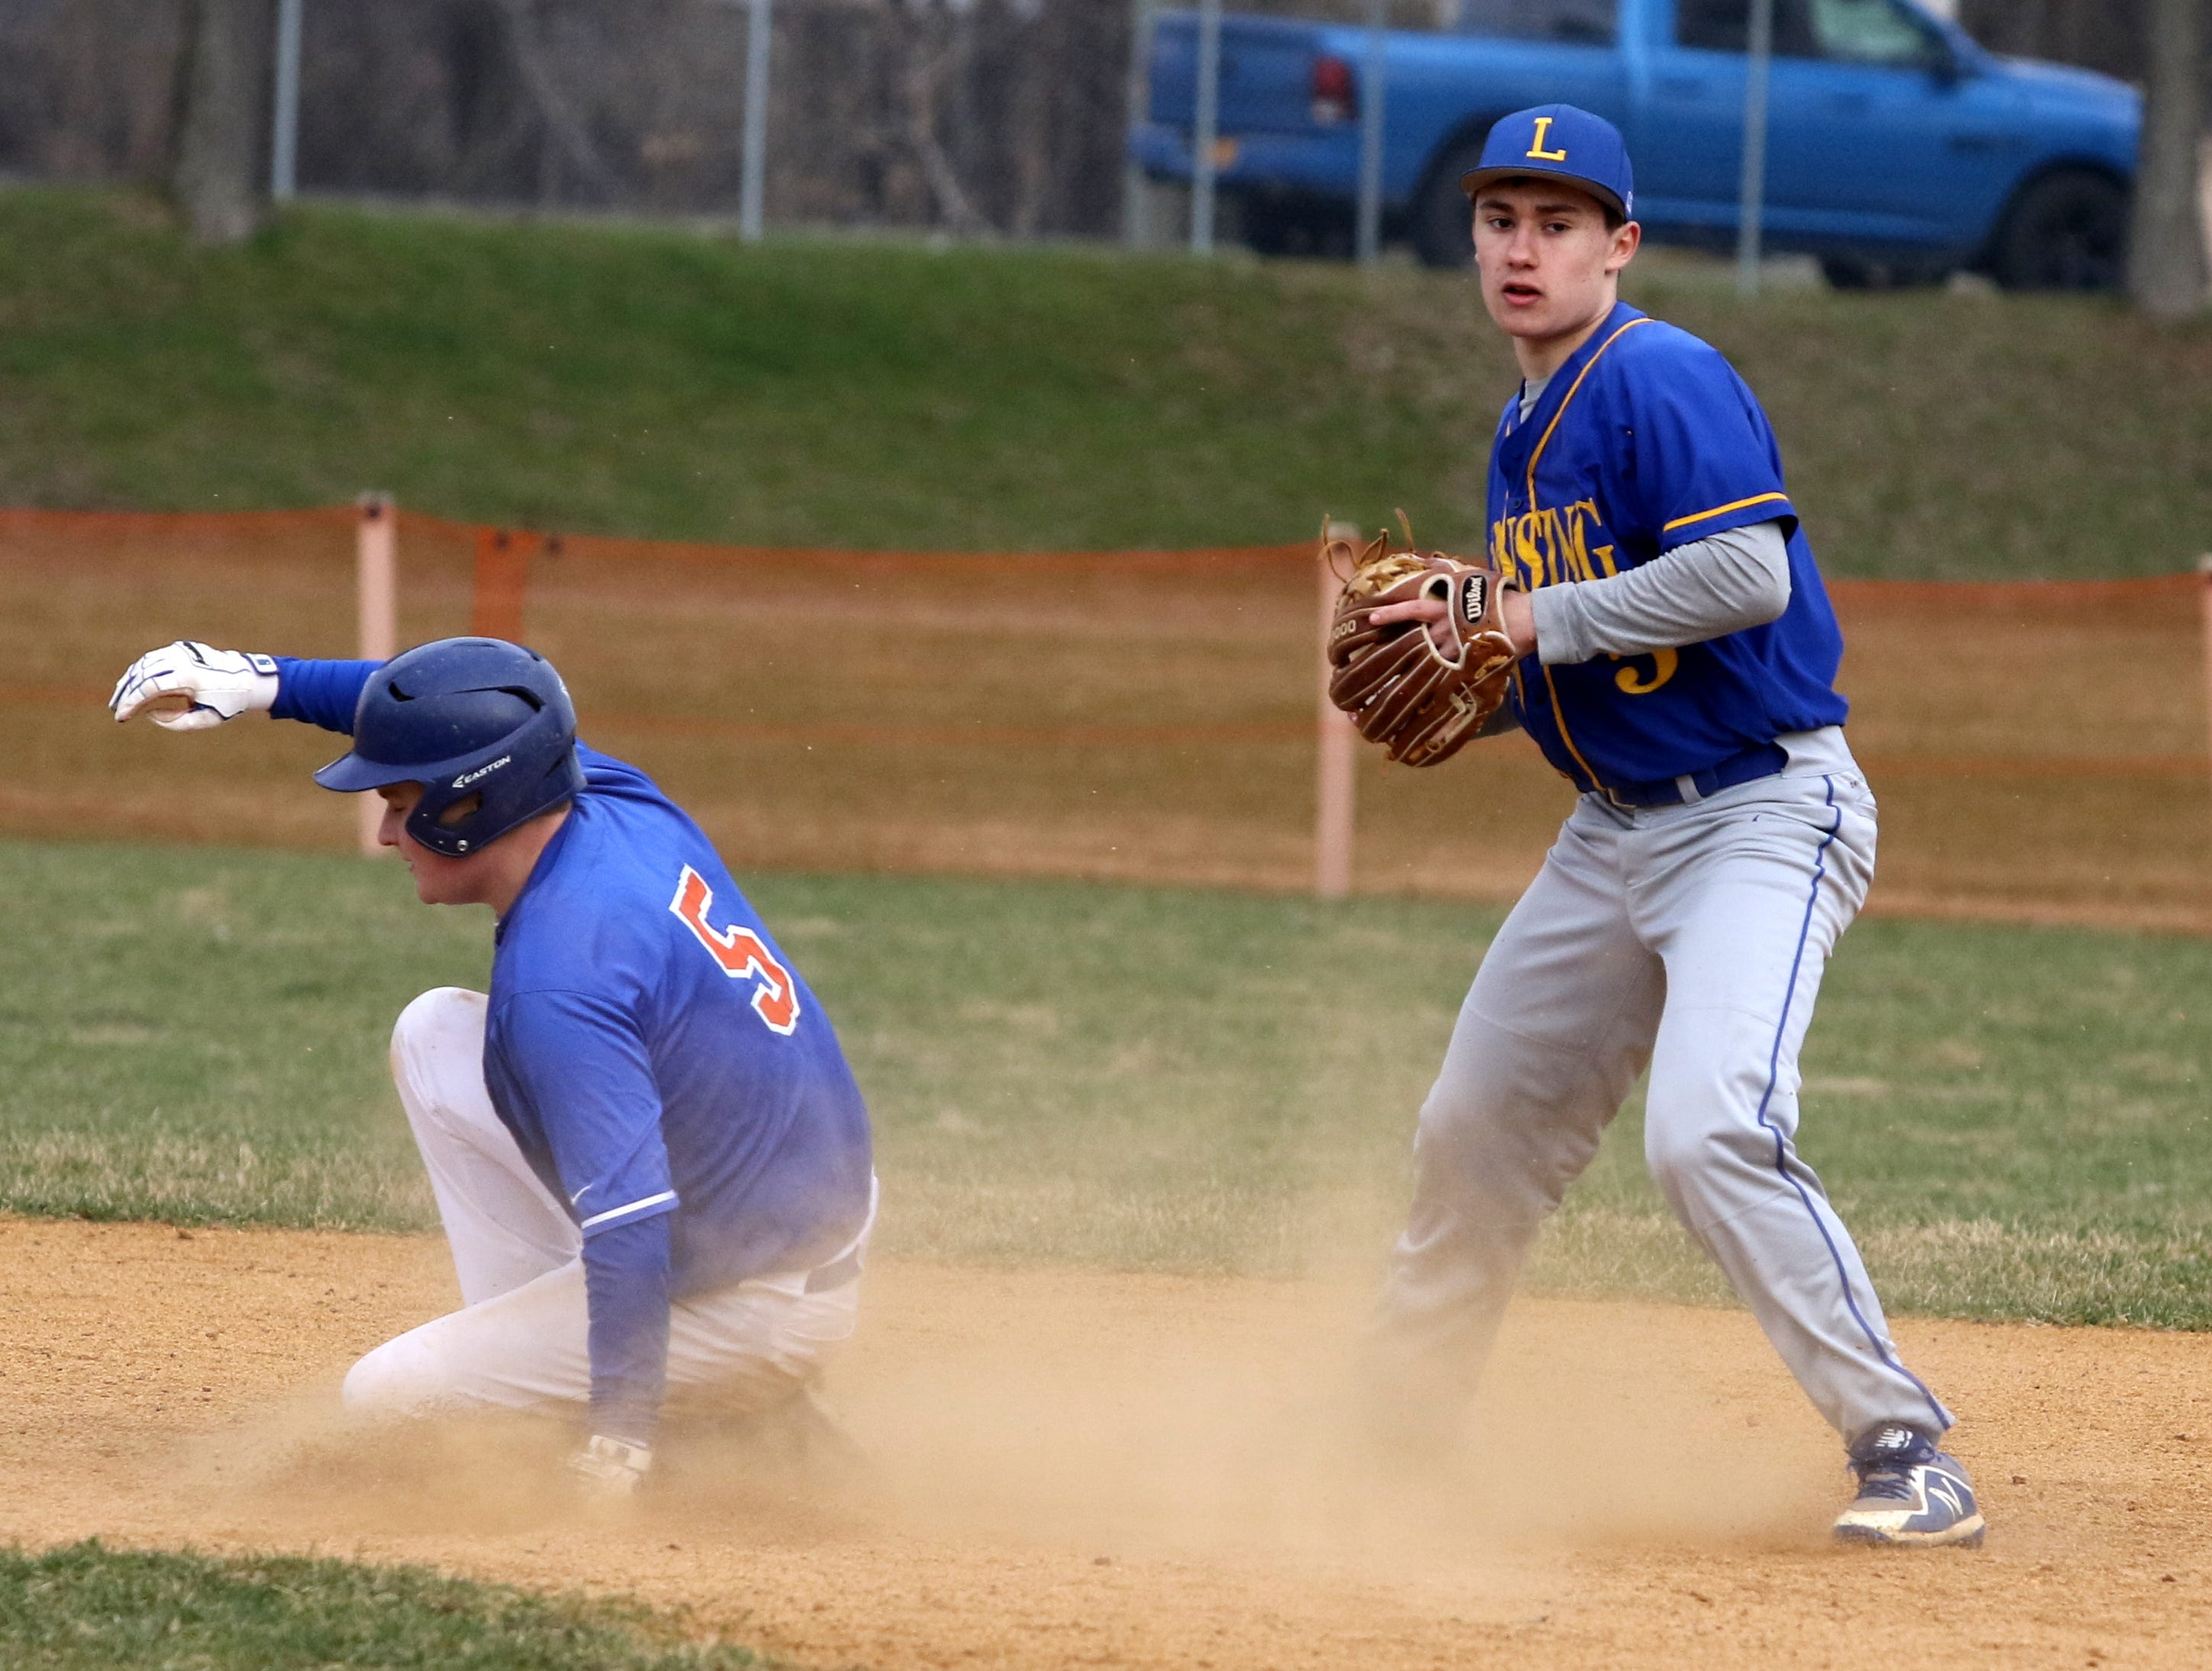 Action from Lansing at Thomas A. Edison baseball April 11, 2019 in Elmira Heights.